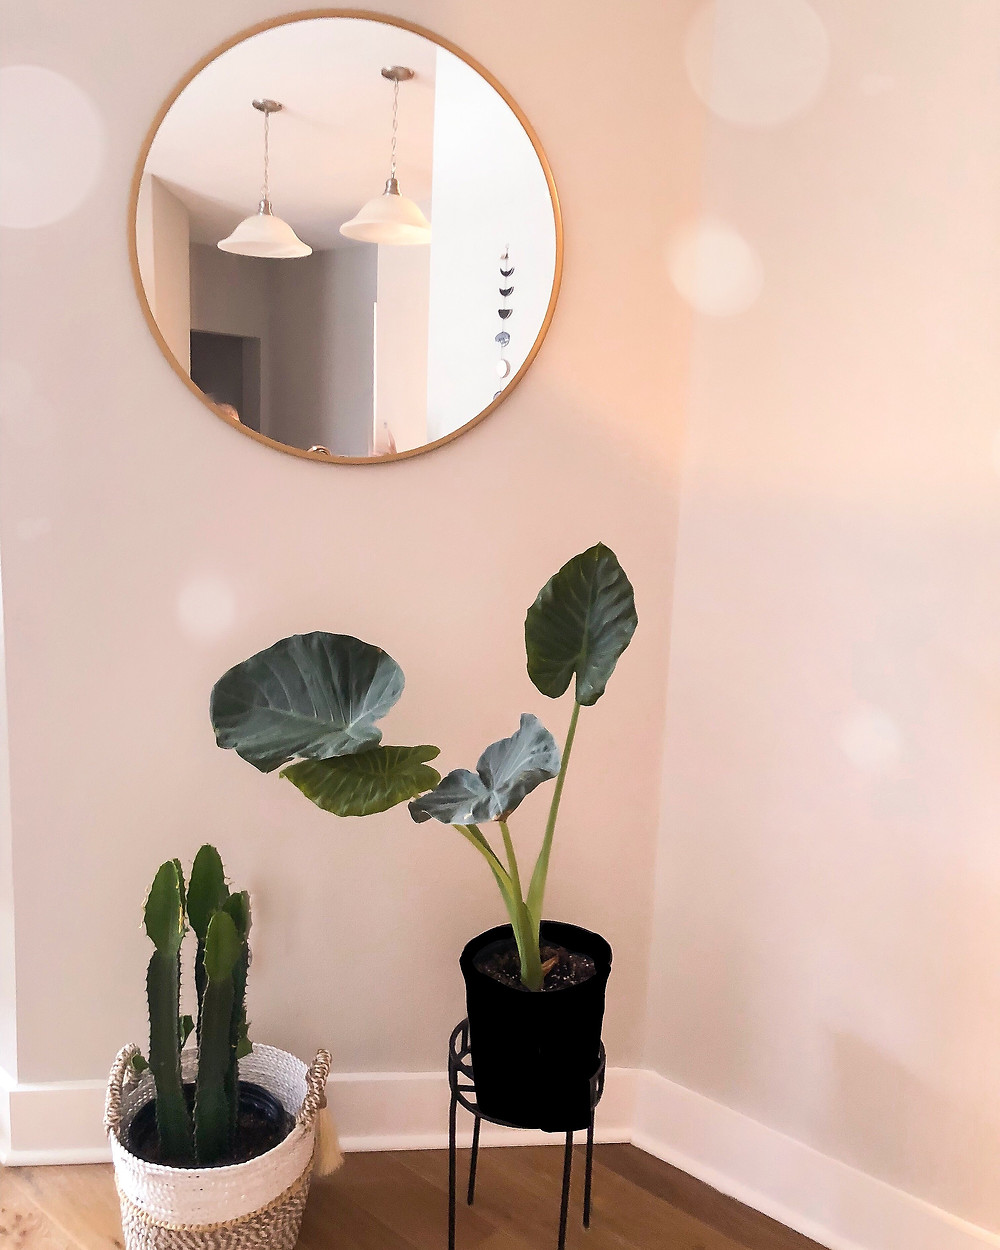 cactus and other plants with modern mirror hanging on the wall